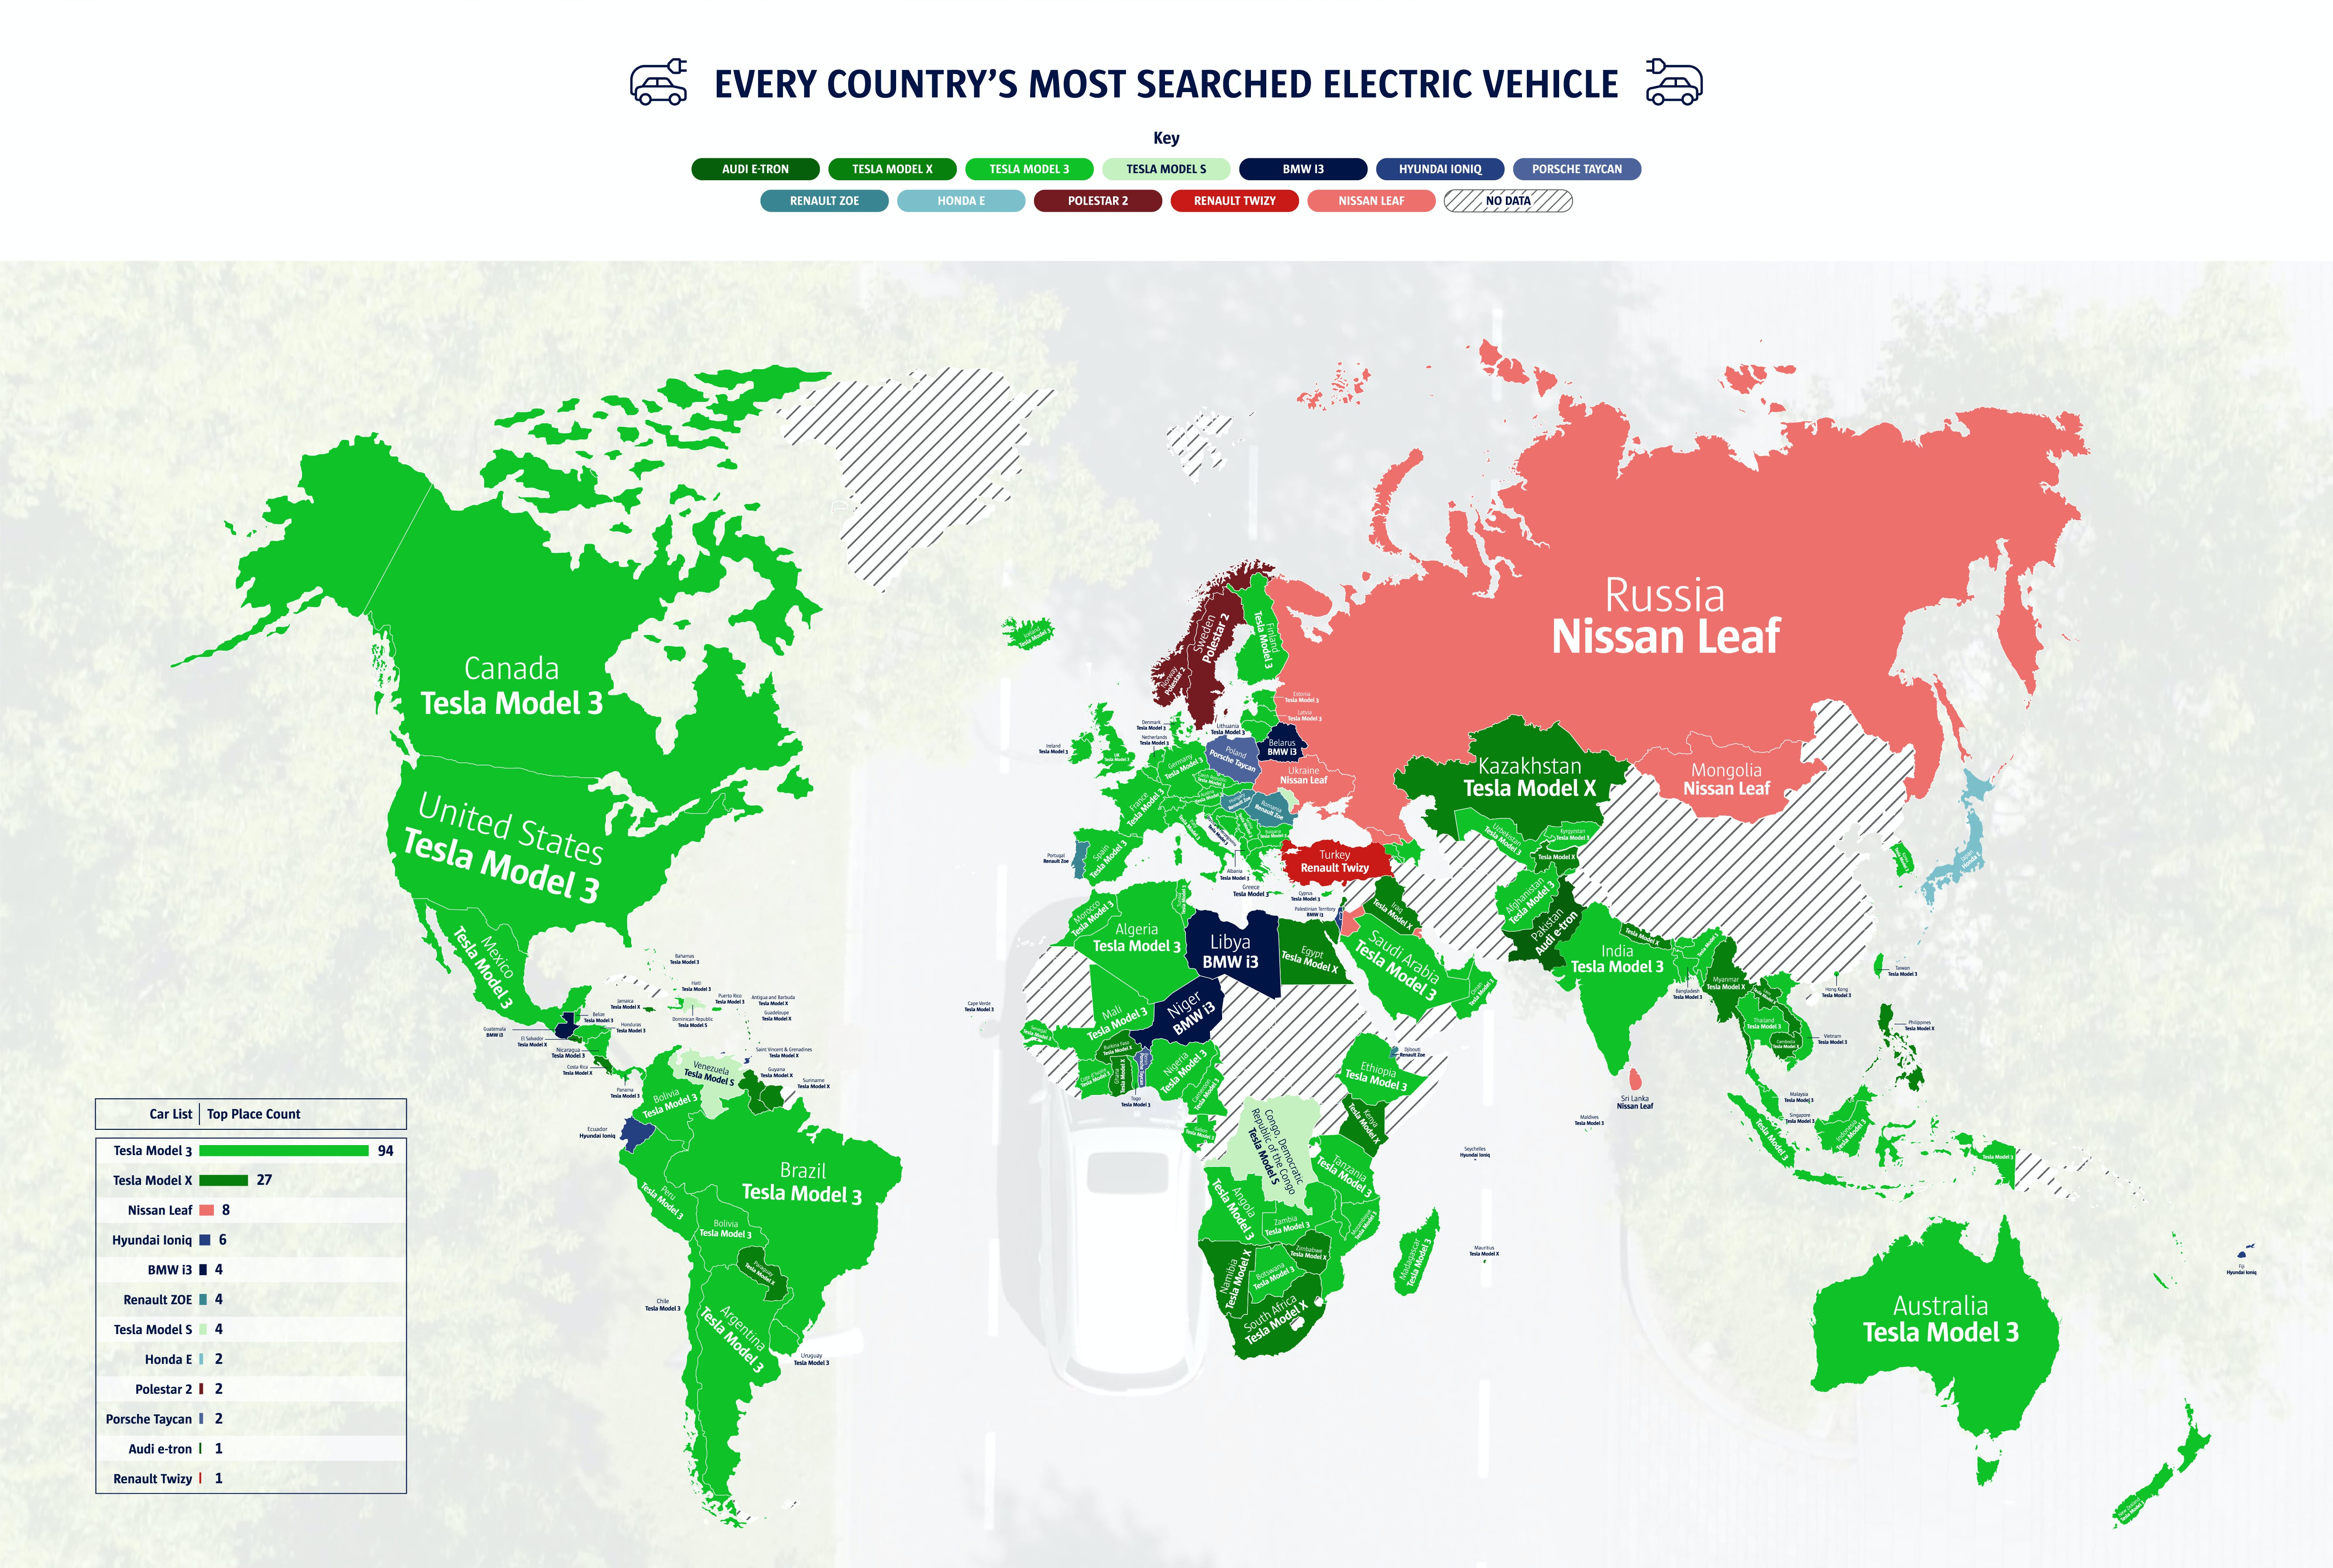 Google's most searched for electric vehicles globally